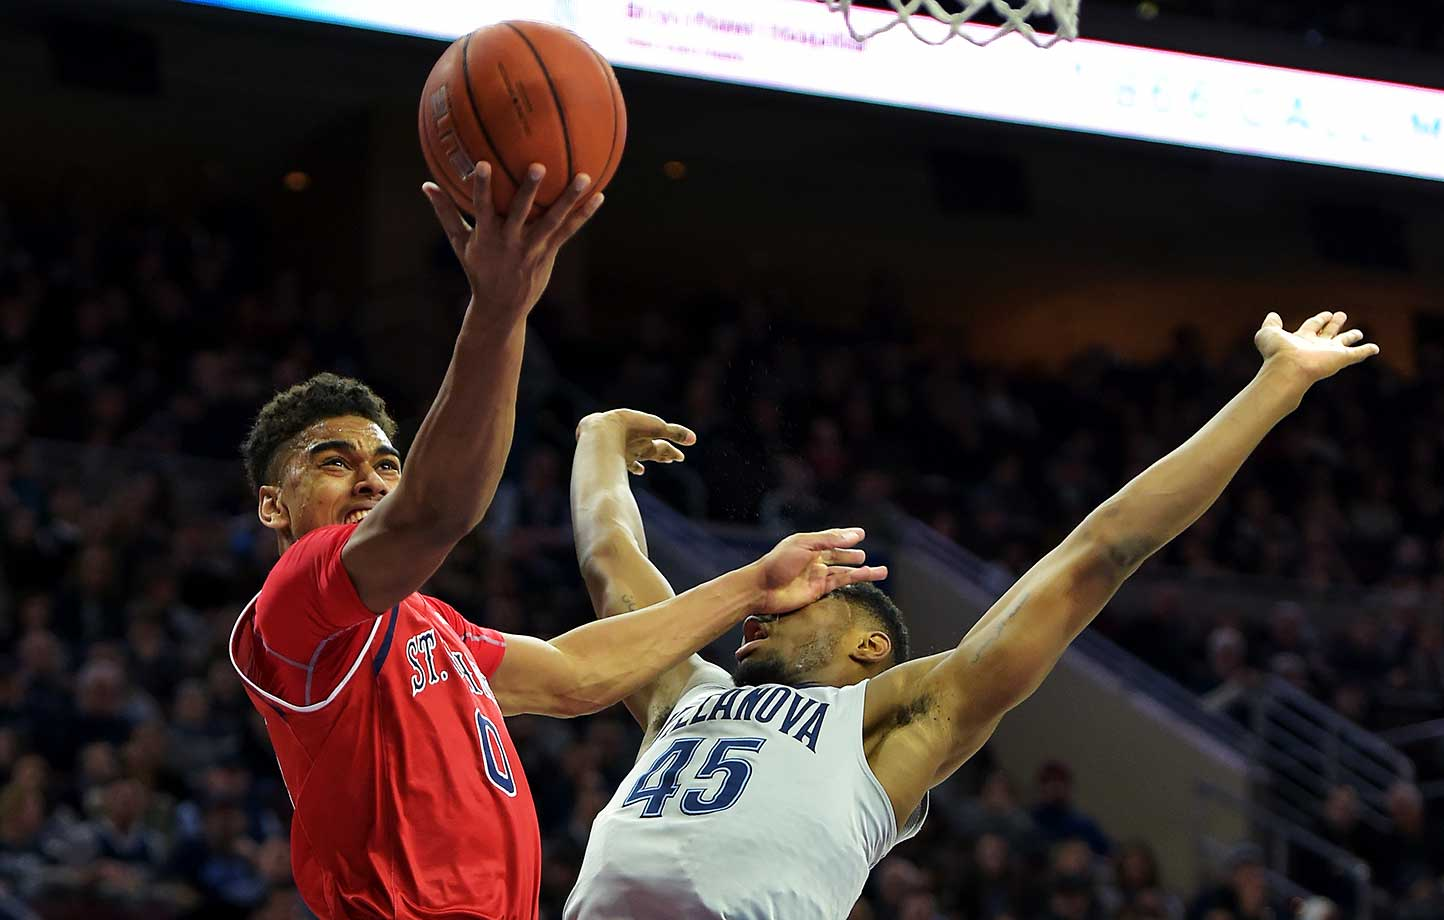 Malik Ellison of the St. John's Red Storm is fouled by Darryl Reynolds of the Villanova Wildcats.